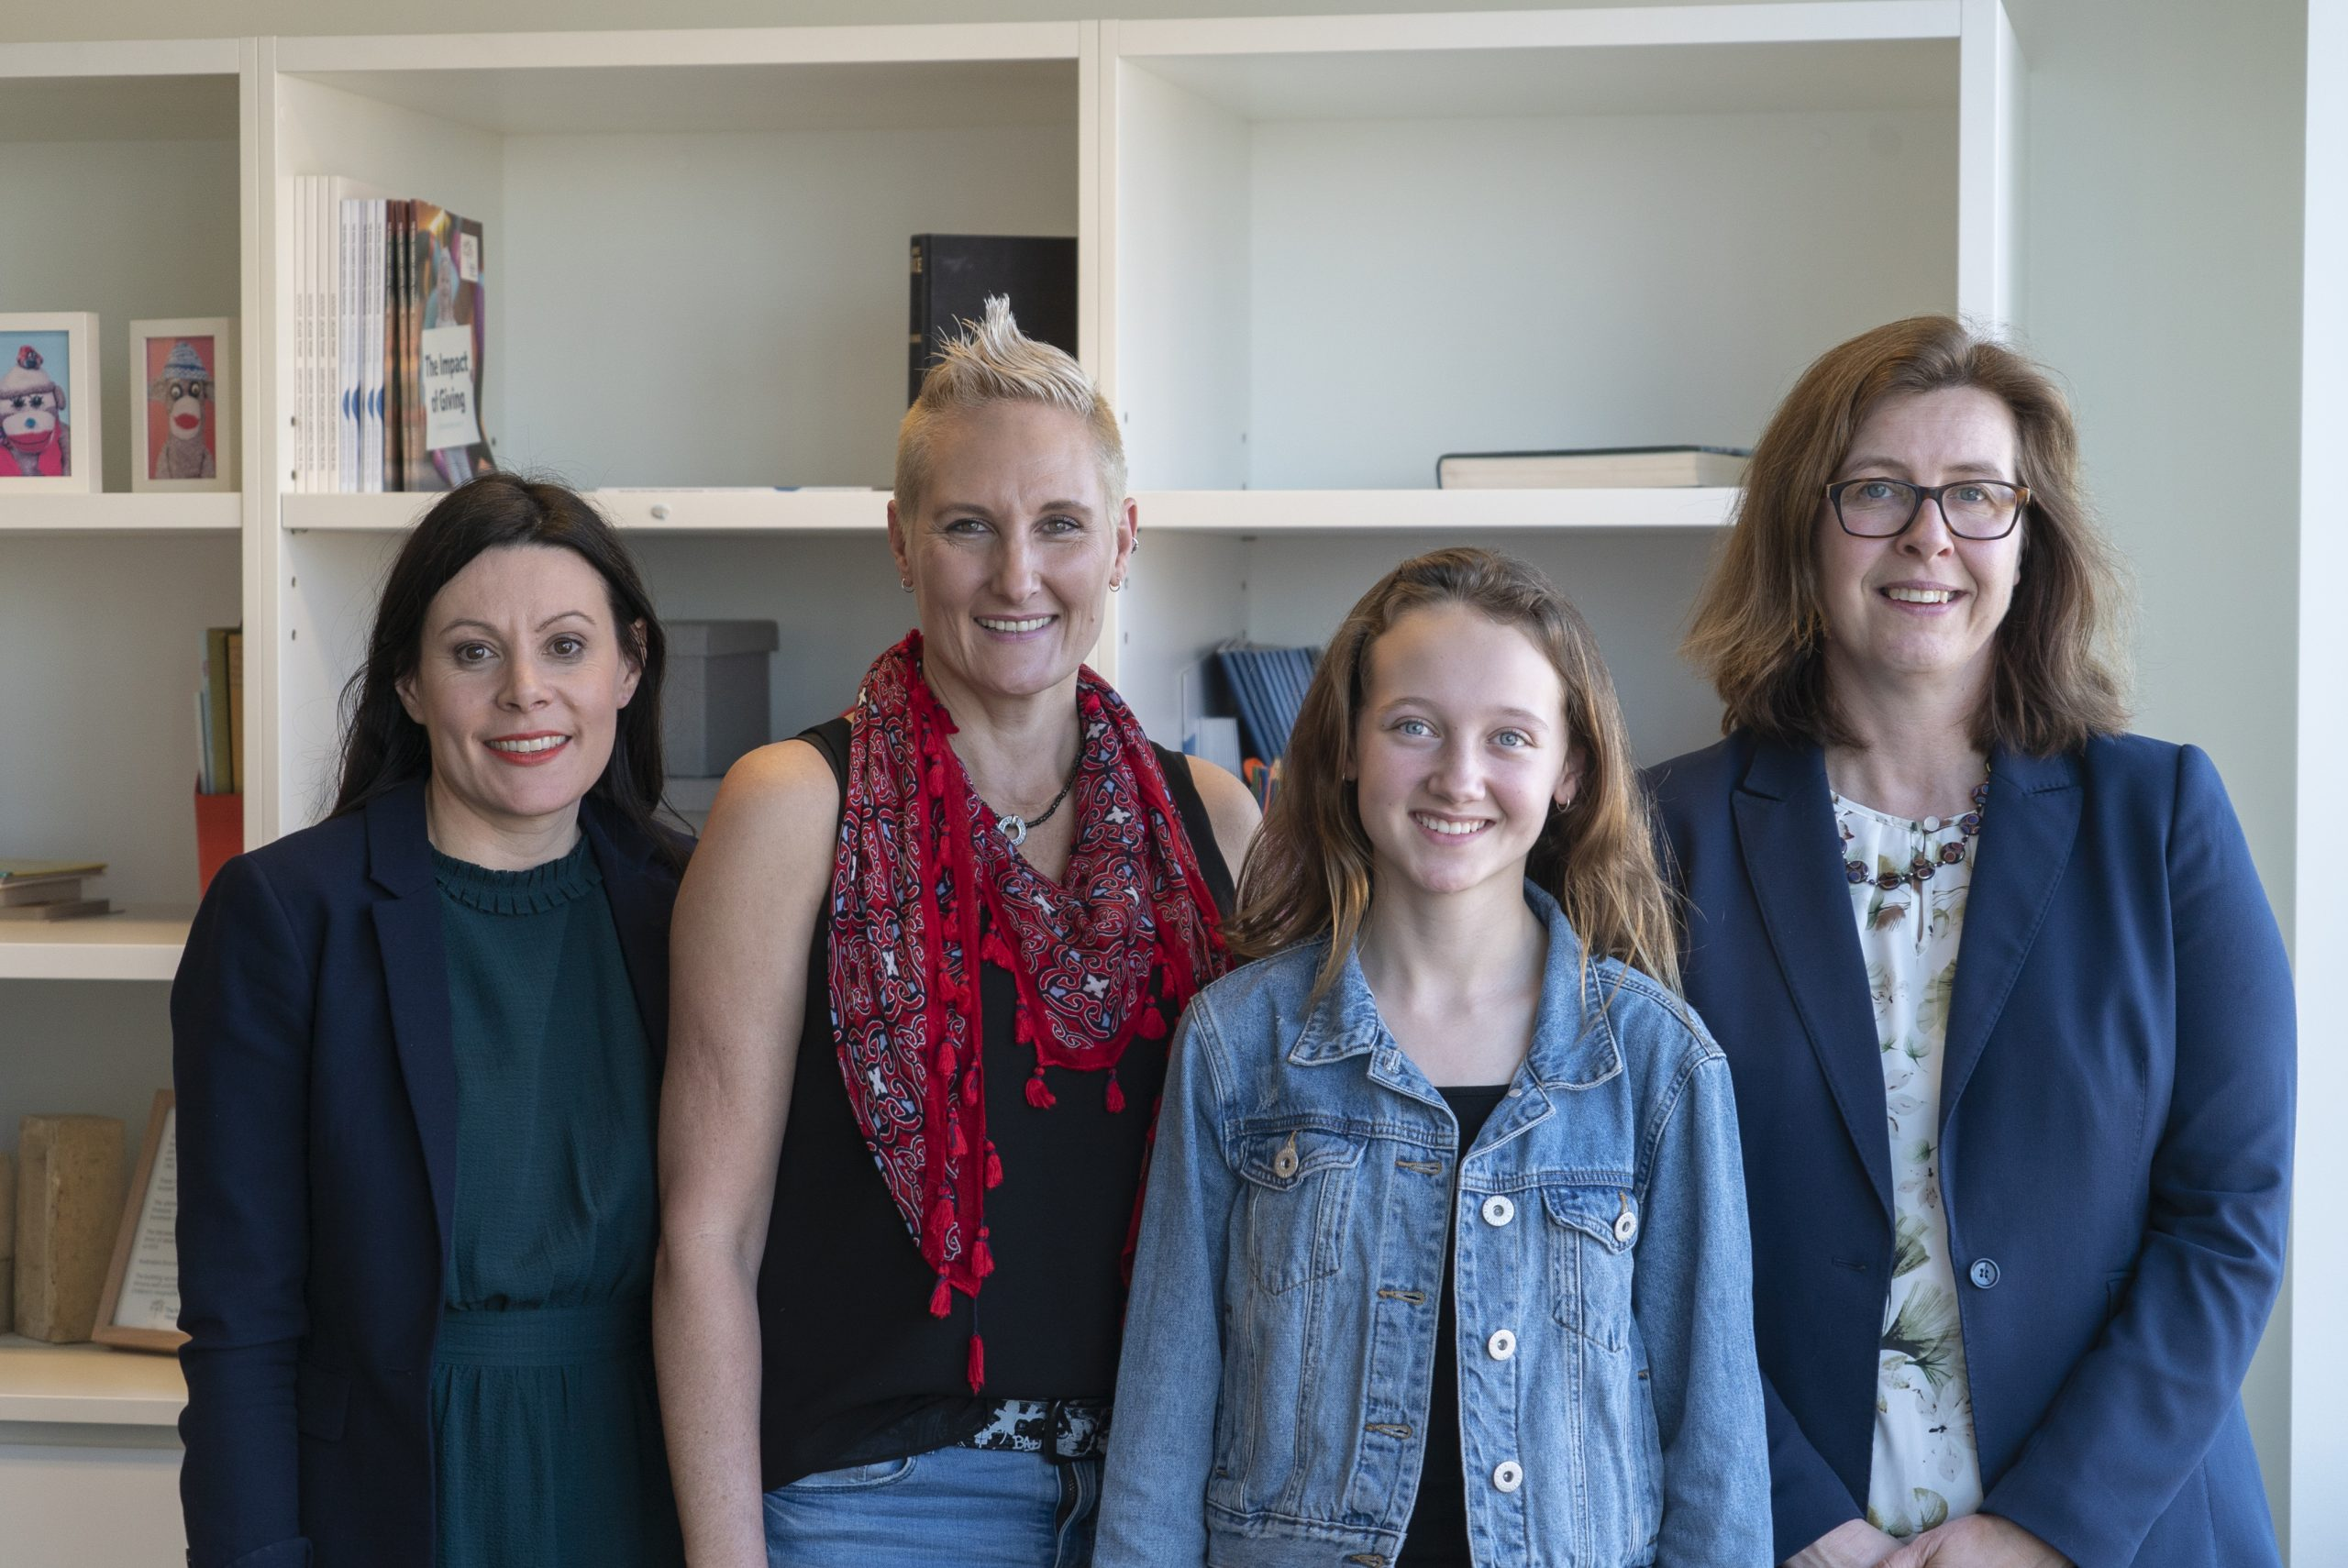 Participant Sian with Mum Azelene (centre), and study investigators Prof Angela Morgan (left) and Prof Melanie Bahlo (right).